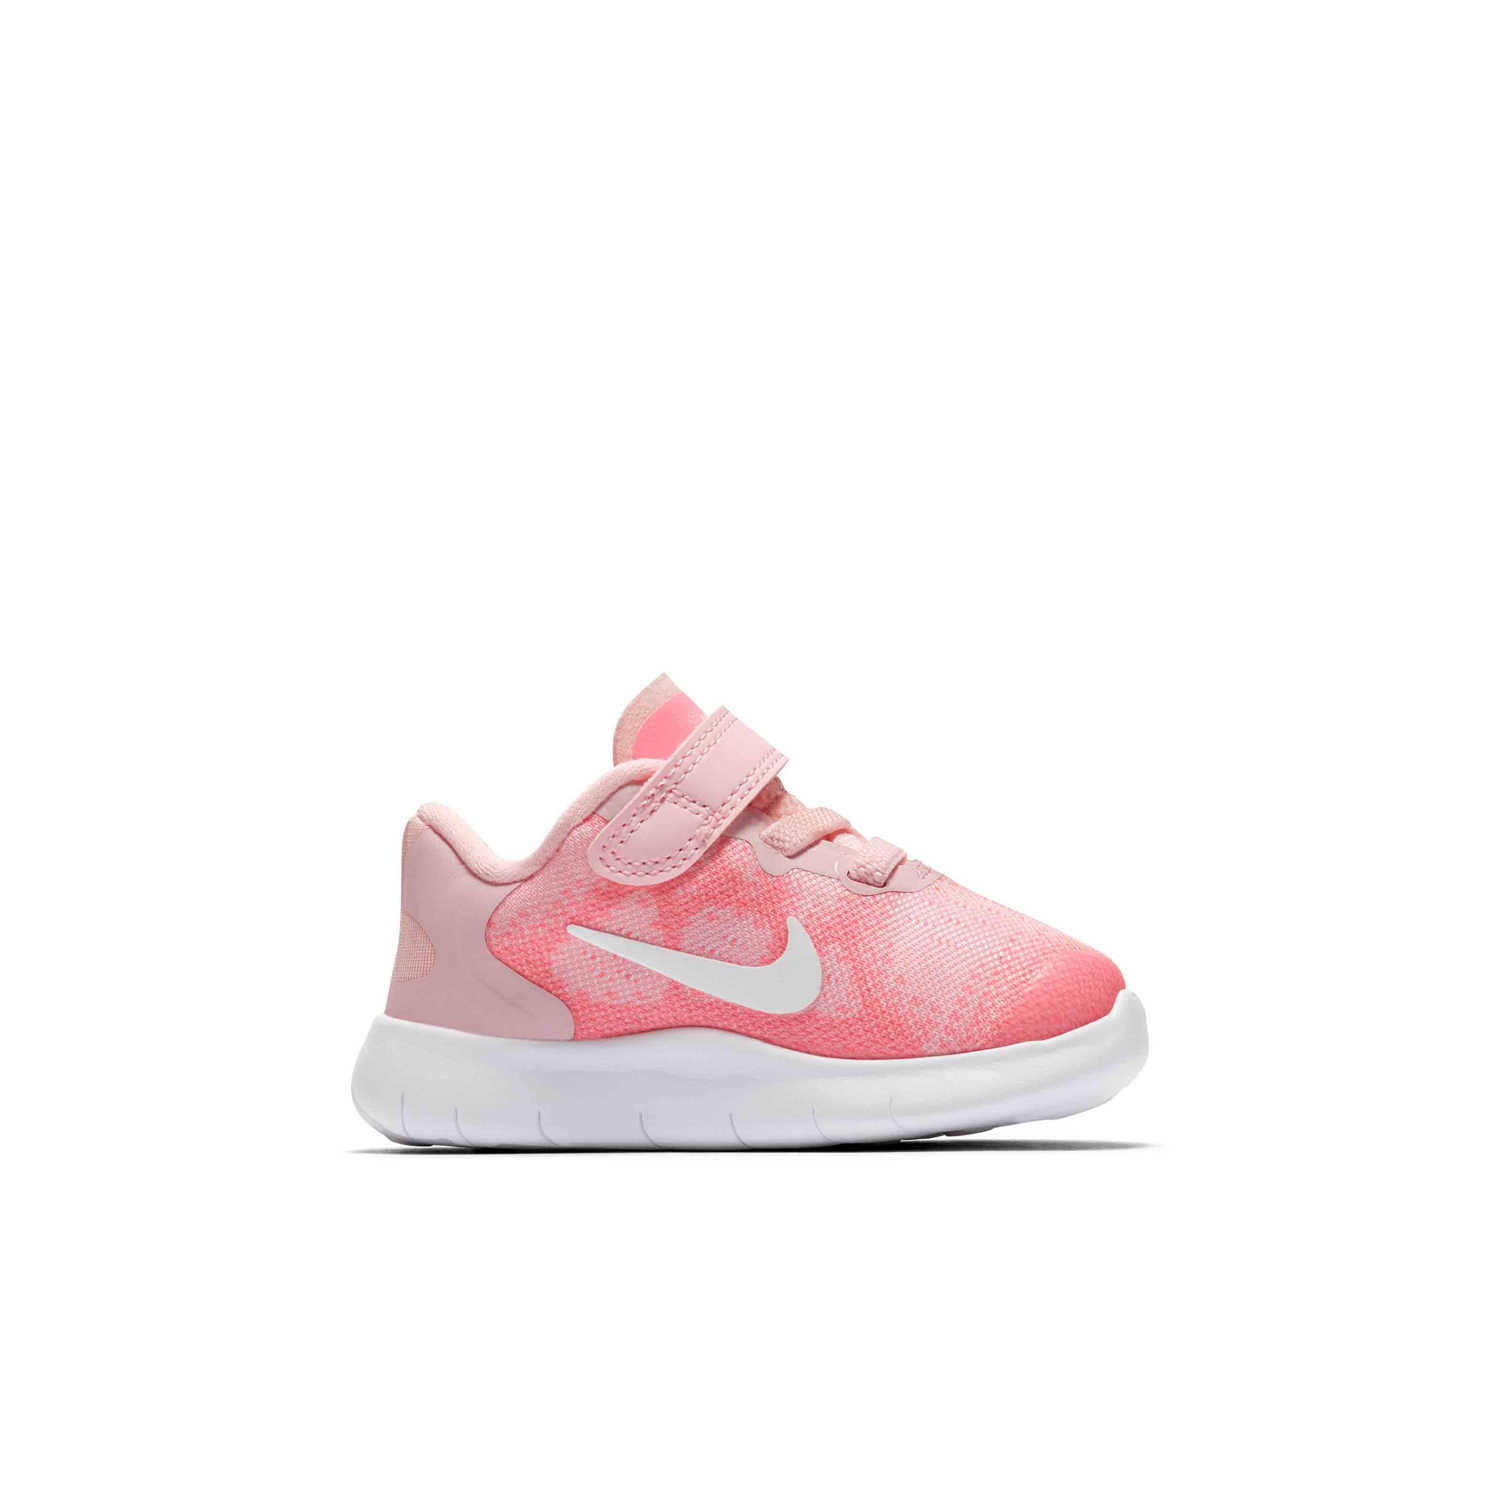 6ab85f224b245 ... Nike FREE RN Girl Toddler Light Ventilation Magic Subsidies Children  Motion Casual Shoes Running Shoes  ...